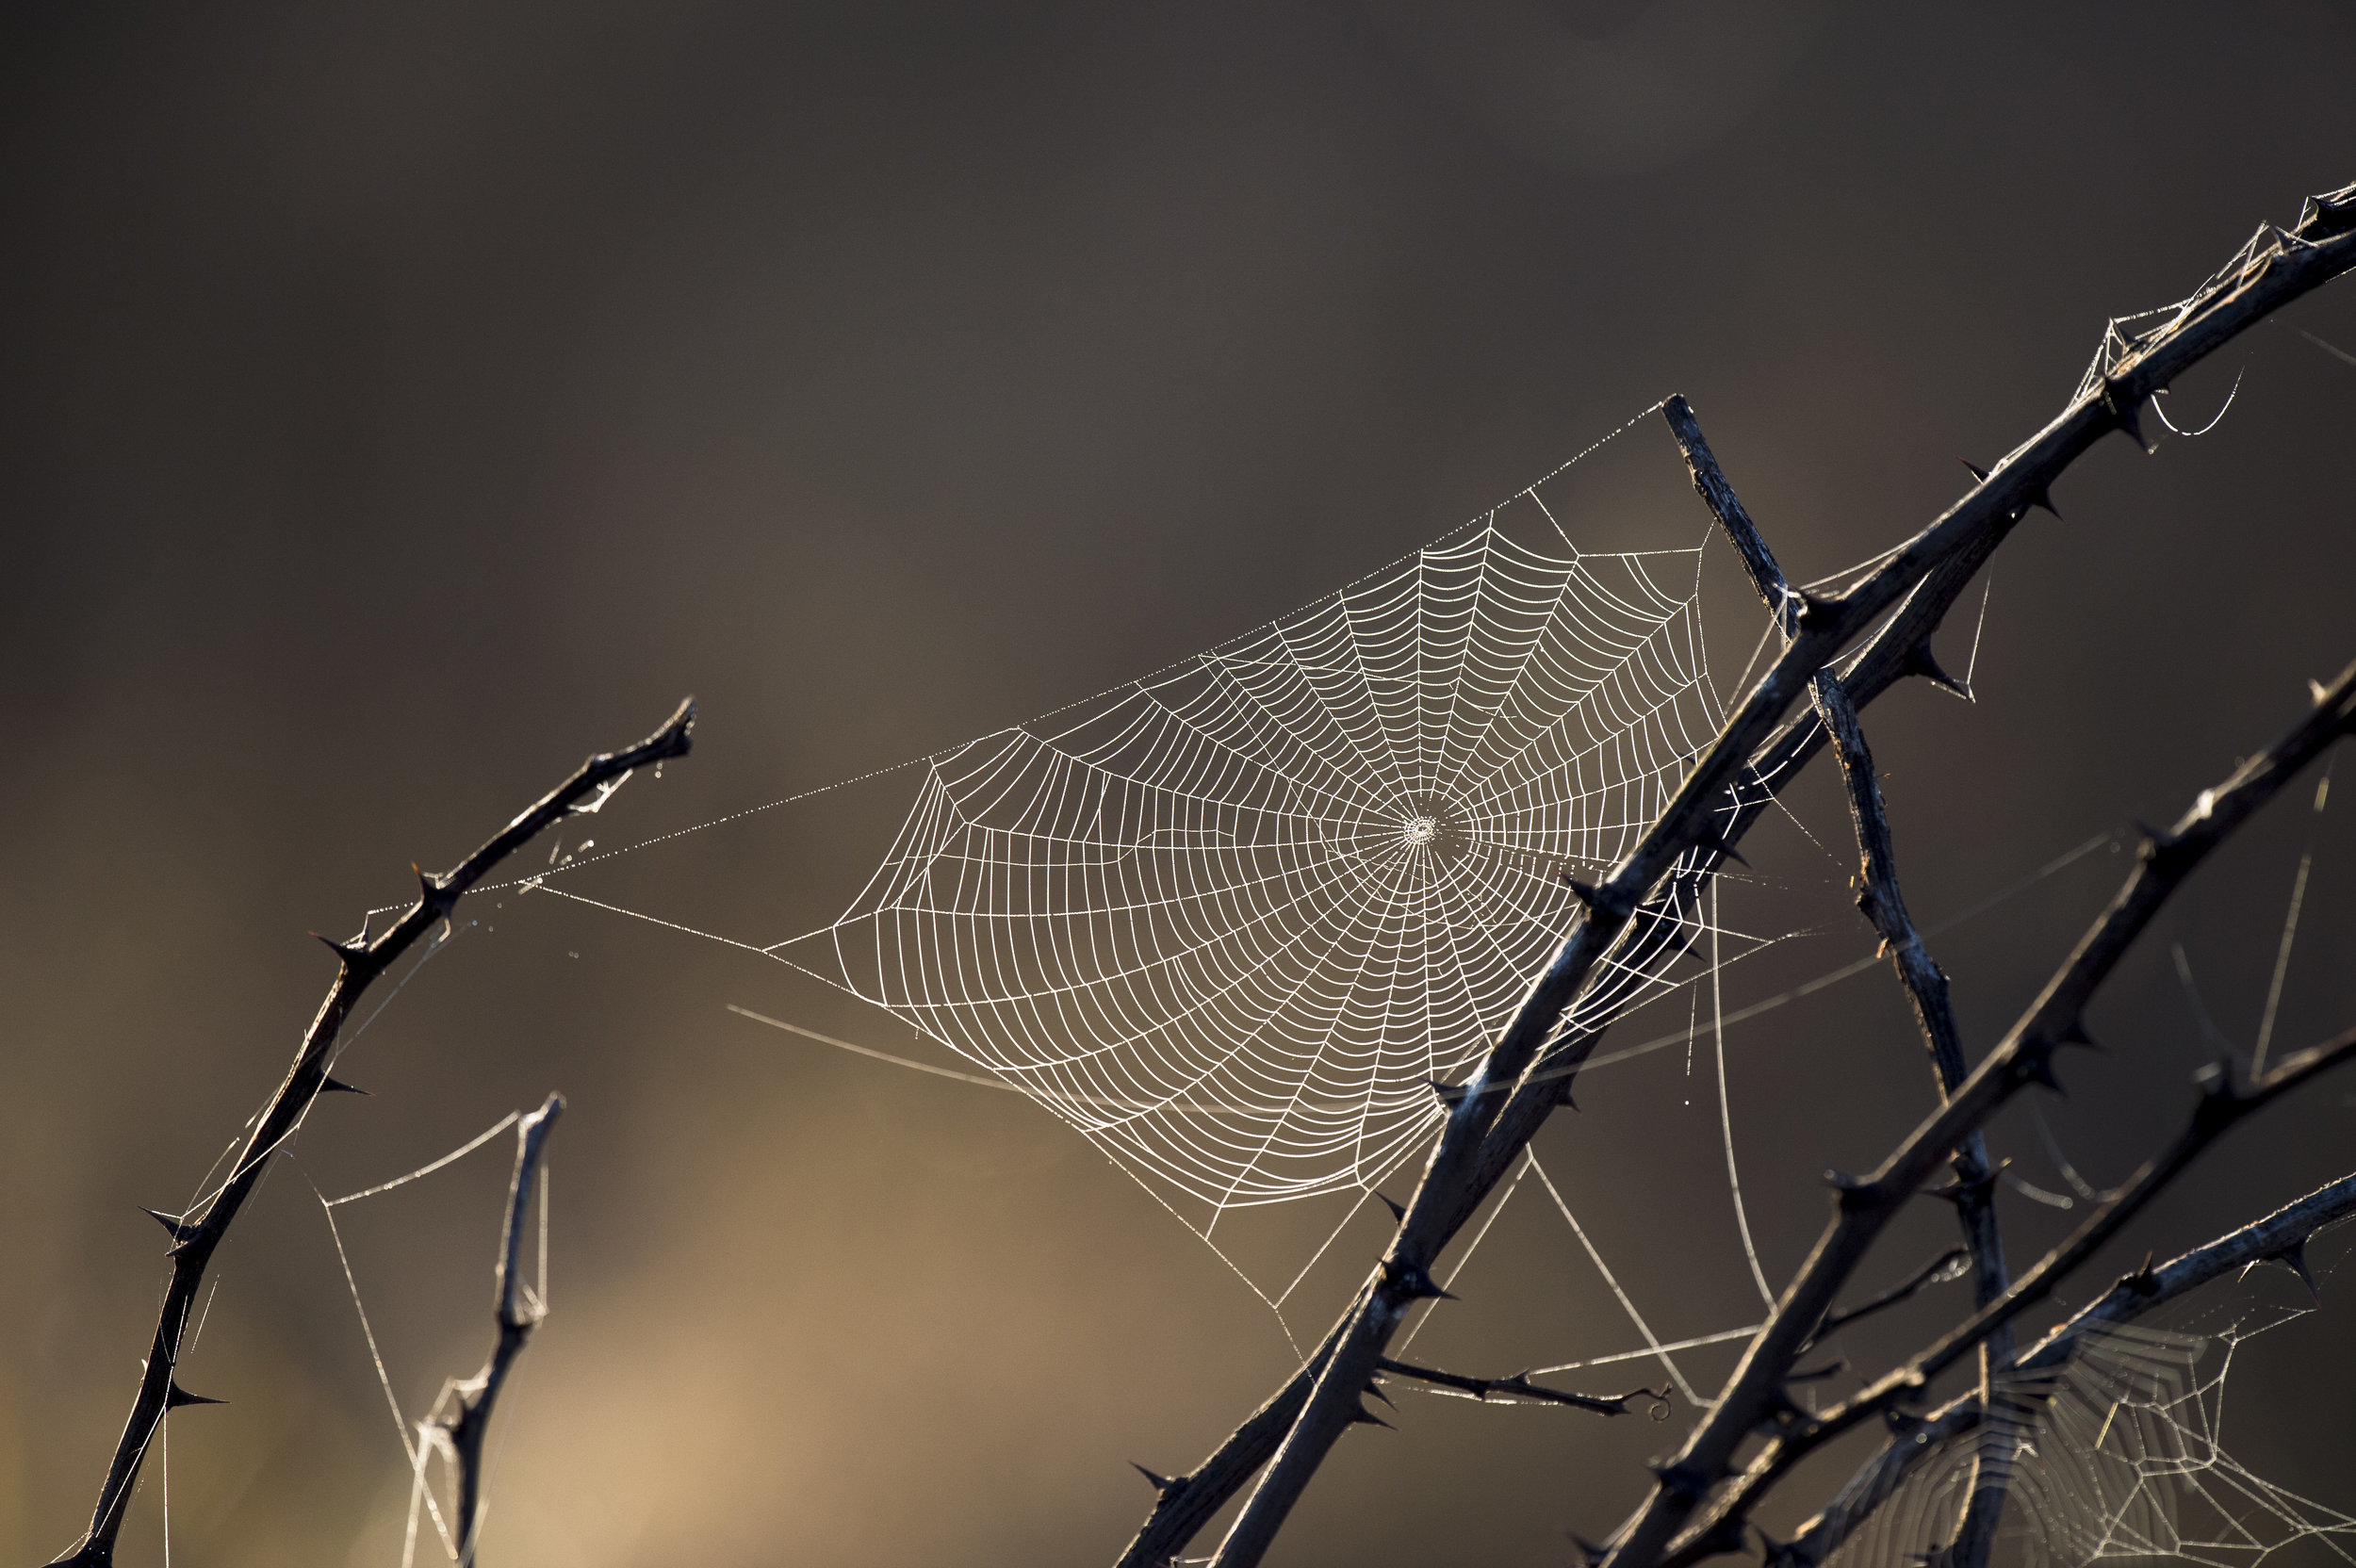 This is not a photo from my house, but this is almost precisely like one of the webs in our tree looks like. It makes me feel ready for Halloween!